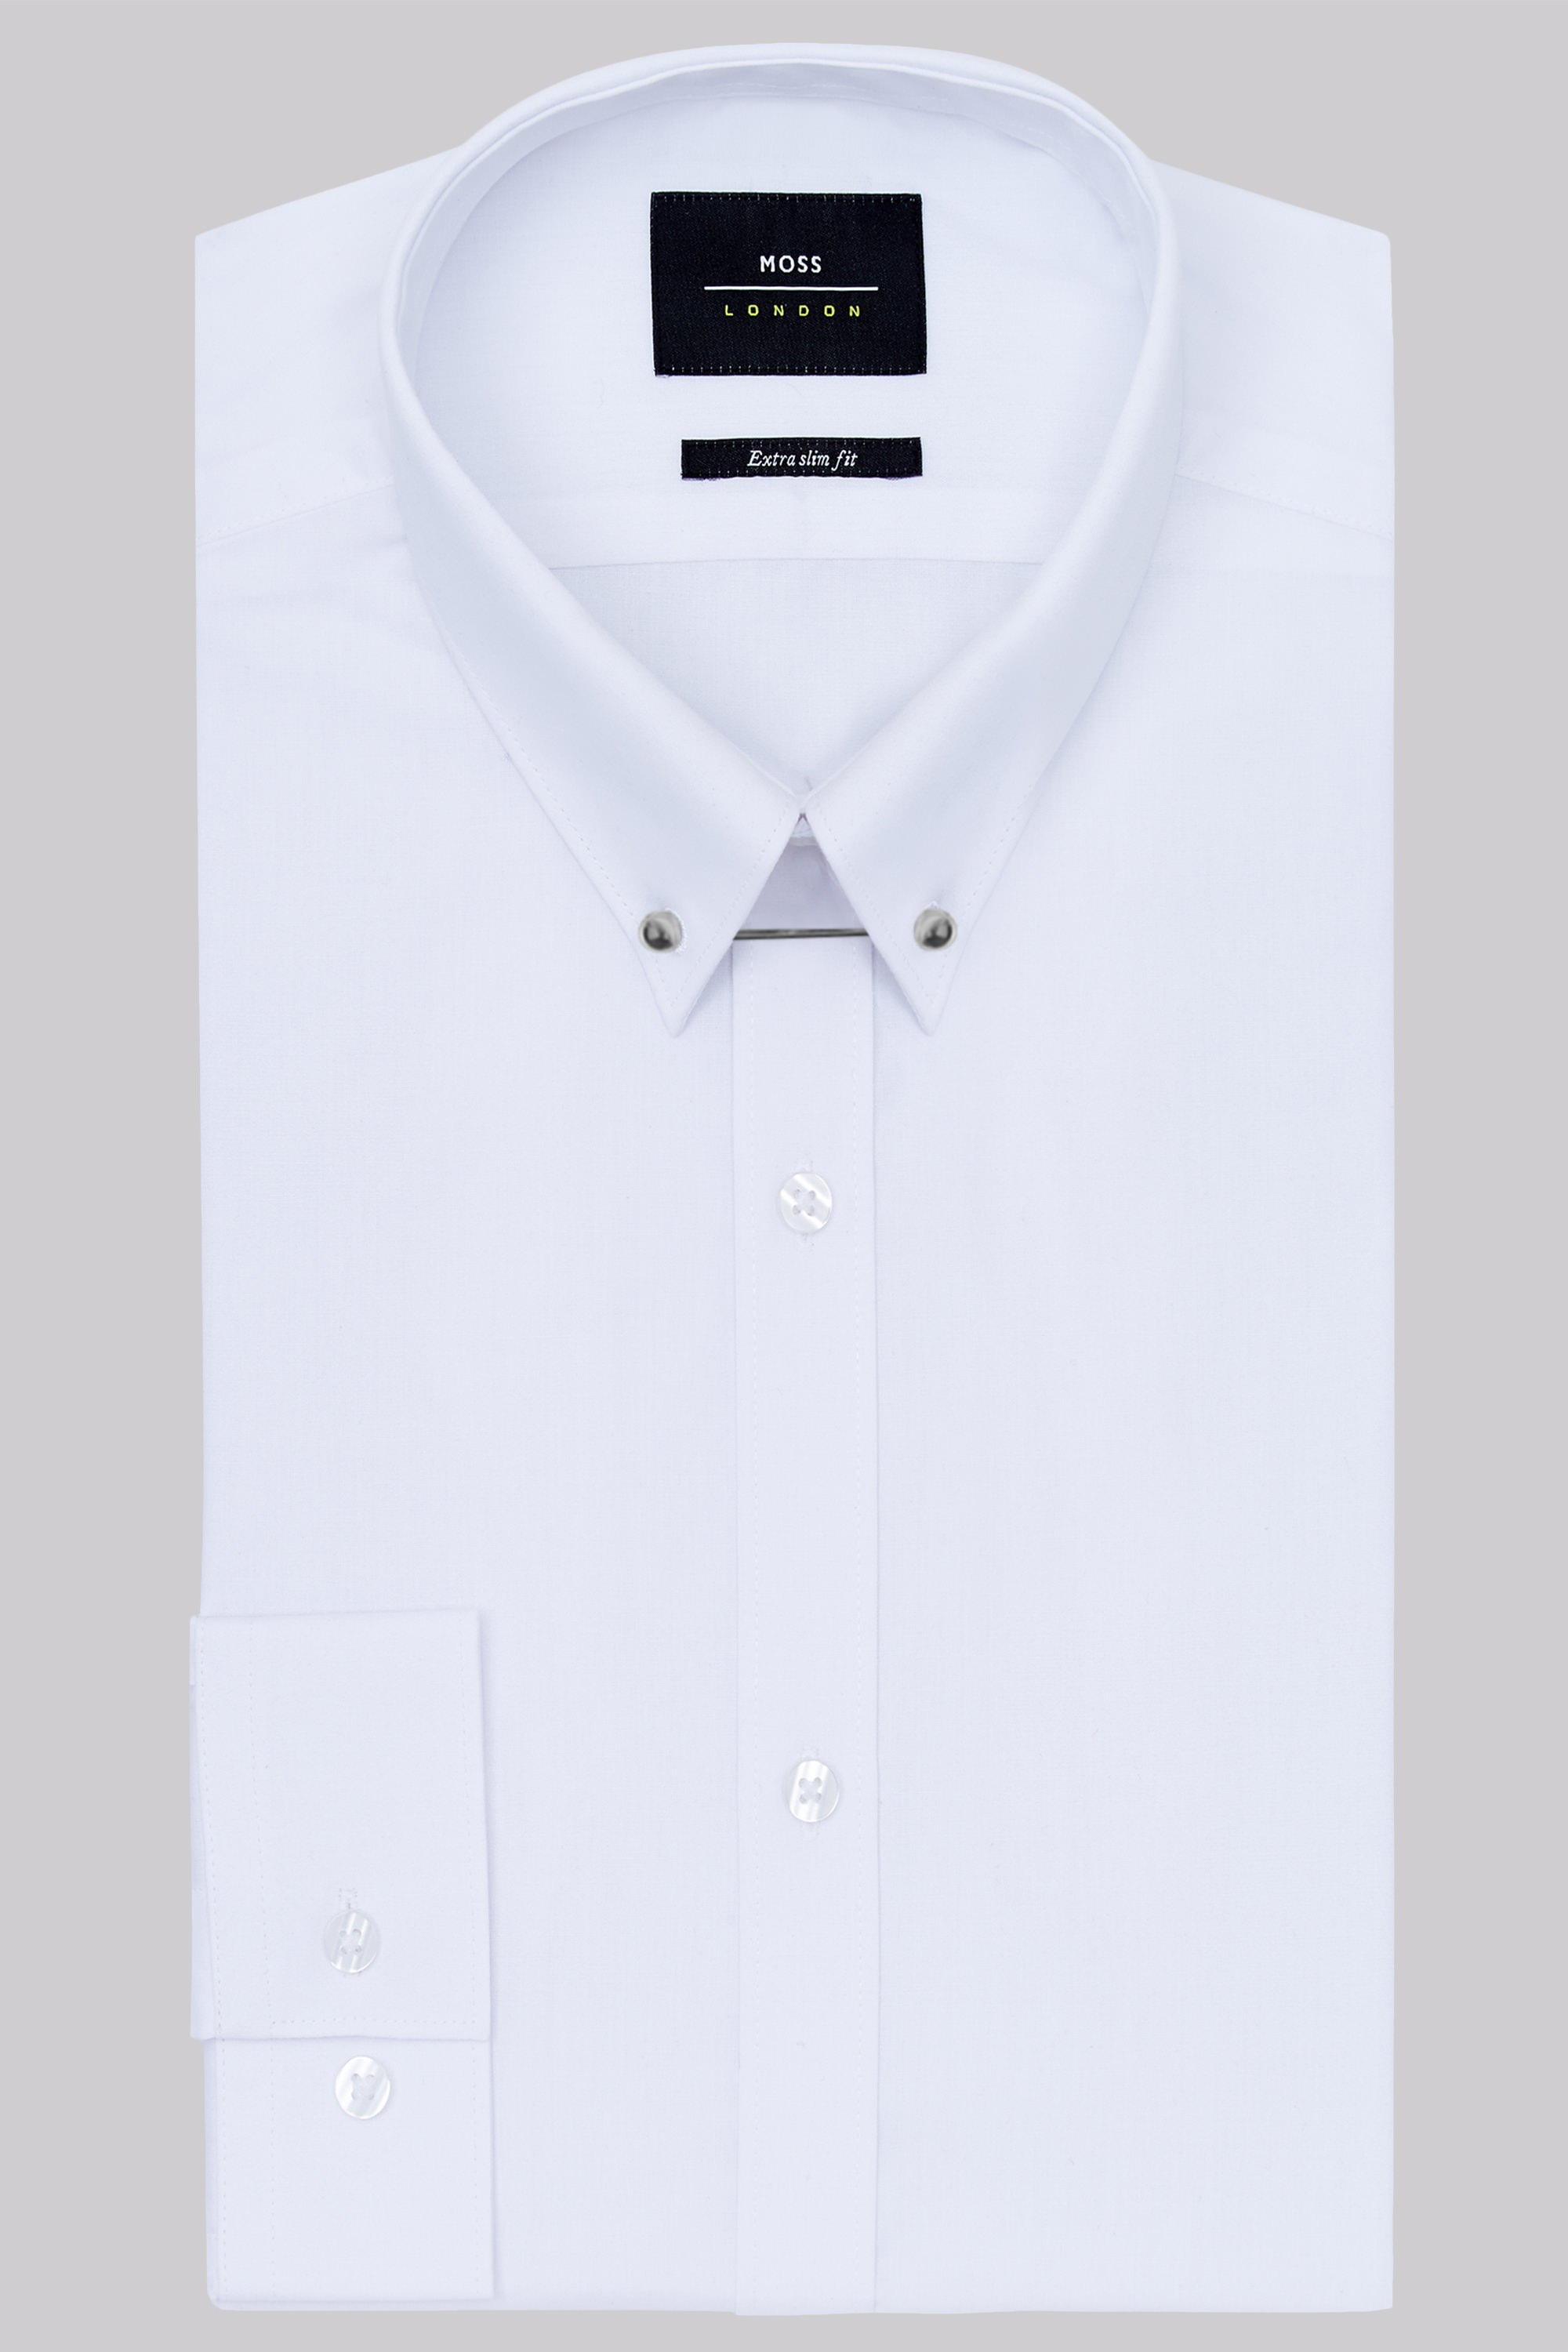 London Extra Slim Fit White Single Cuff Pin Collar Shirt